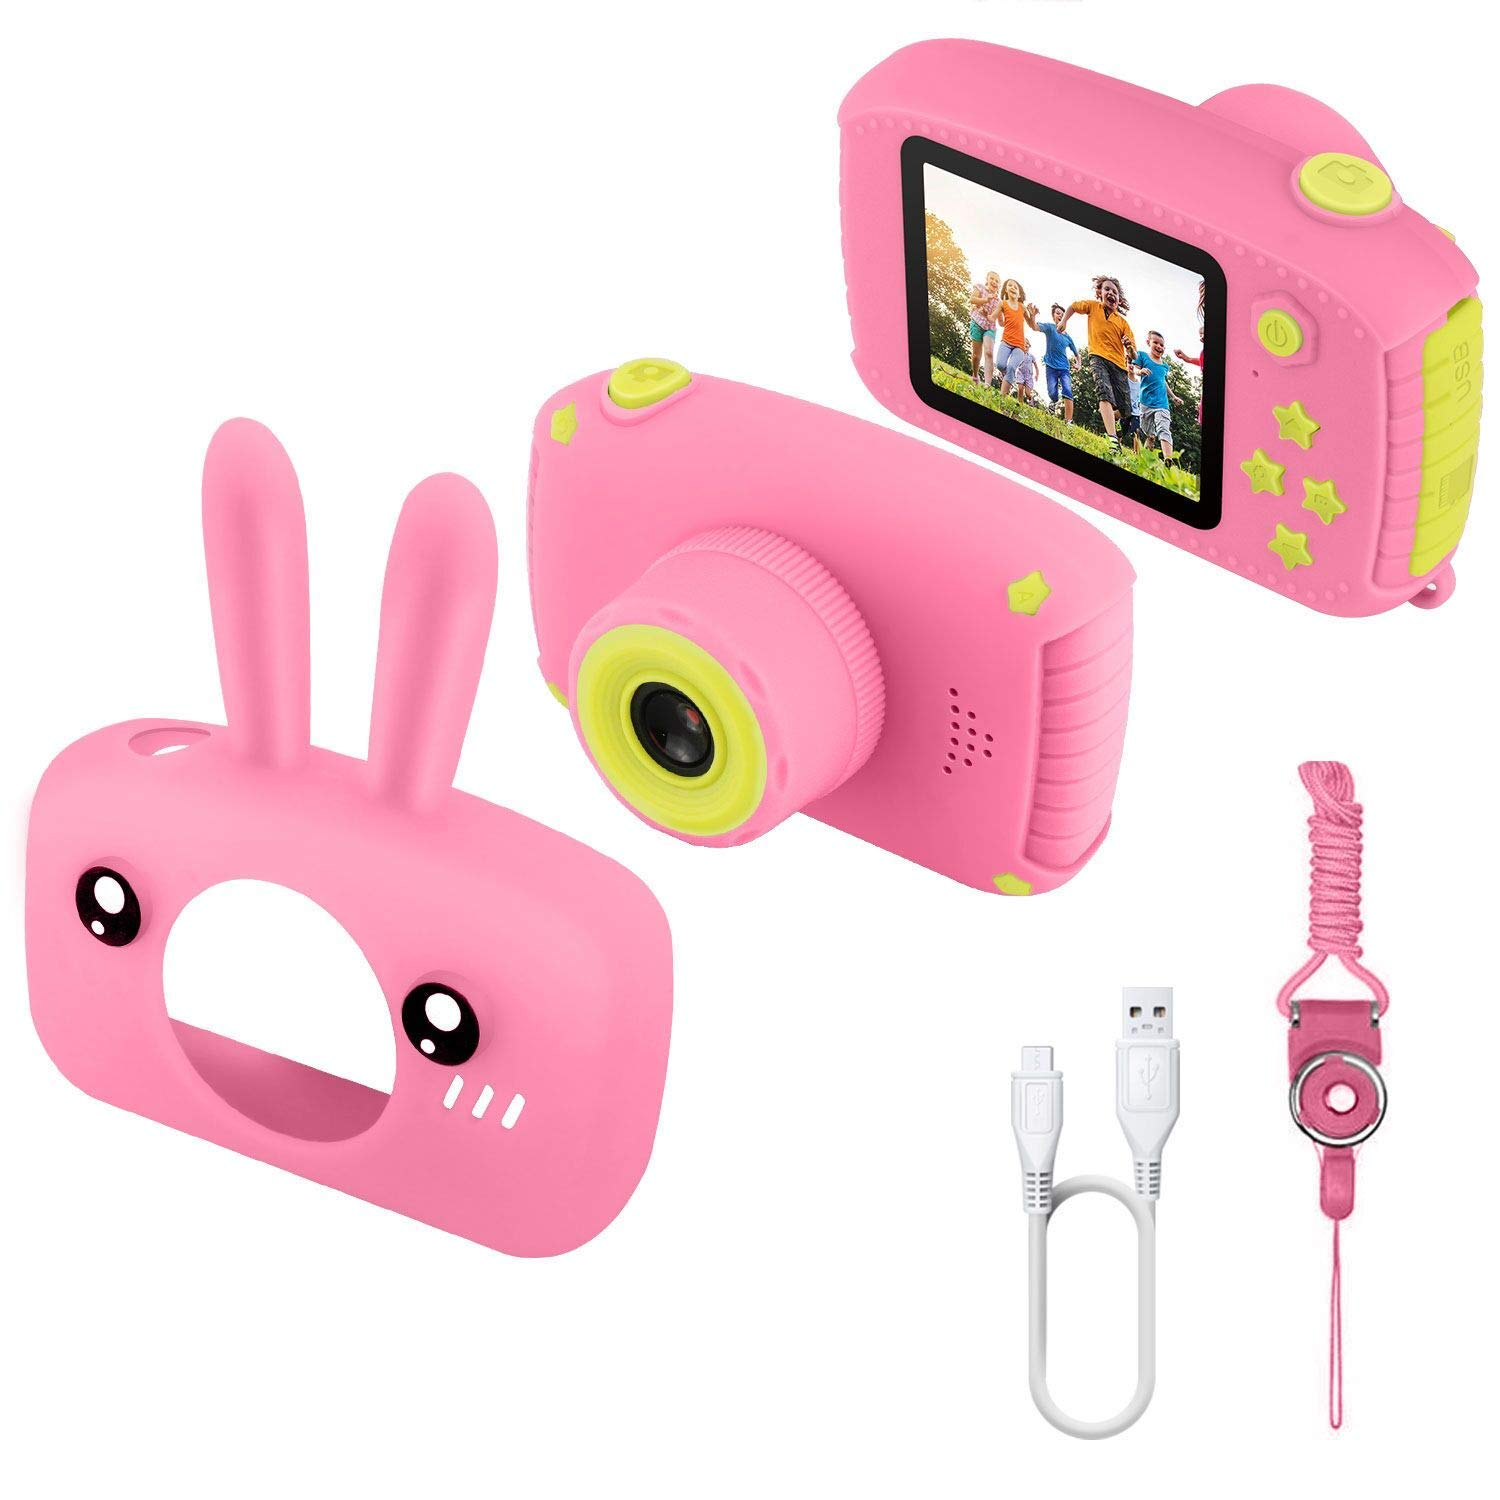 JAMSWALL Kids Camera for Girls,12MP 1080P FHD Digital Video Camera with 28 Funny Filters, Soft Silicone Cute Shell for 3-14 Years Kids